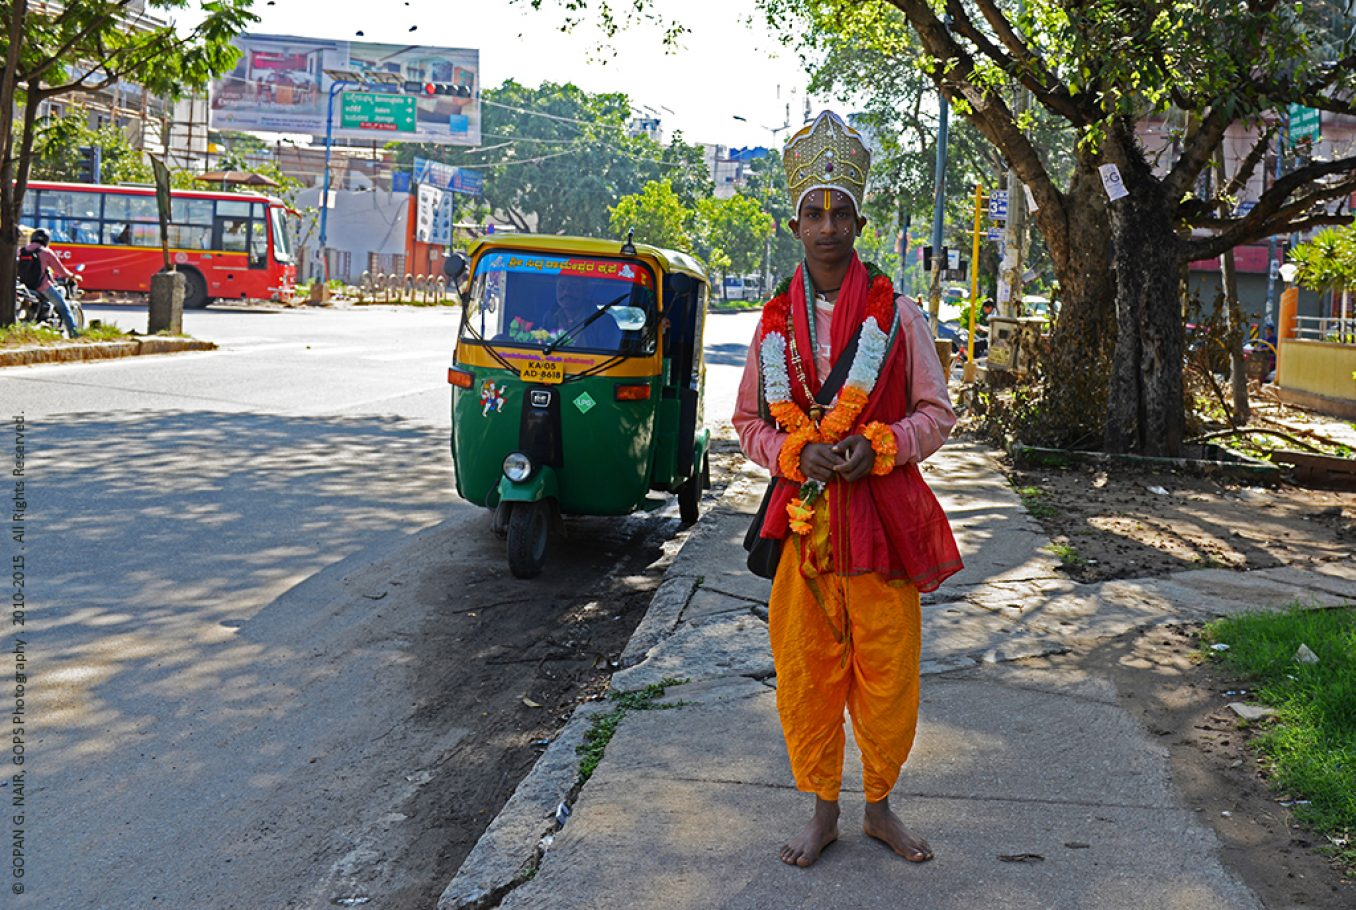 WHEN I MET GOD ON THE STREETS OF BANGALORE